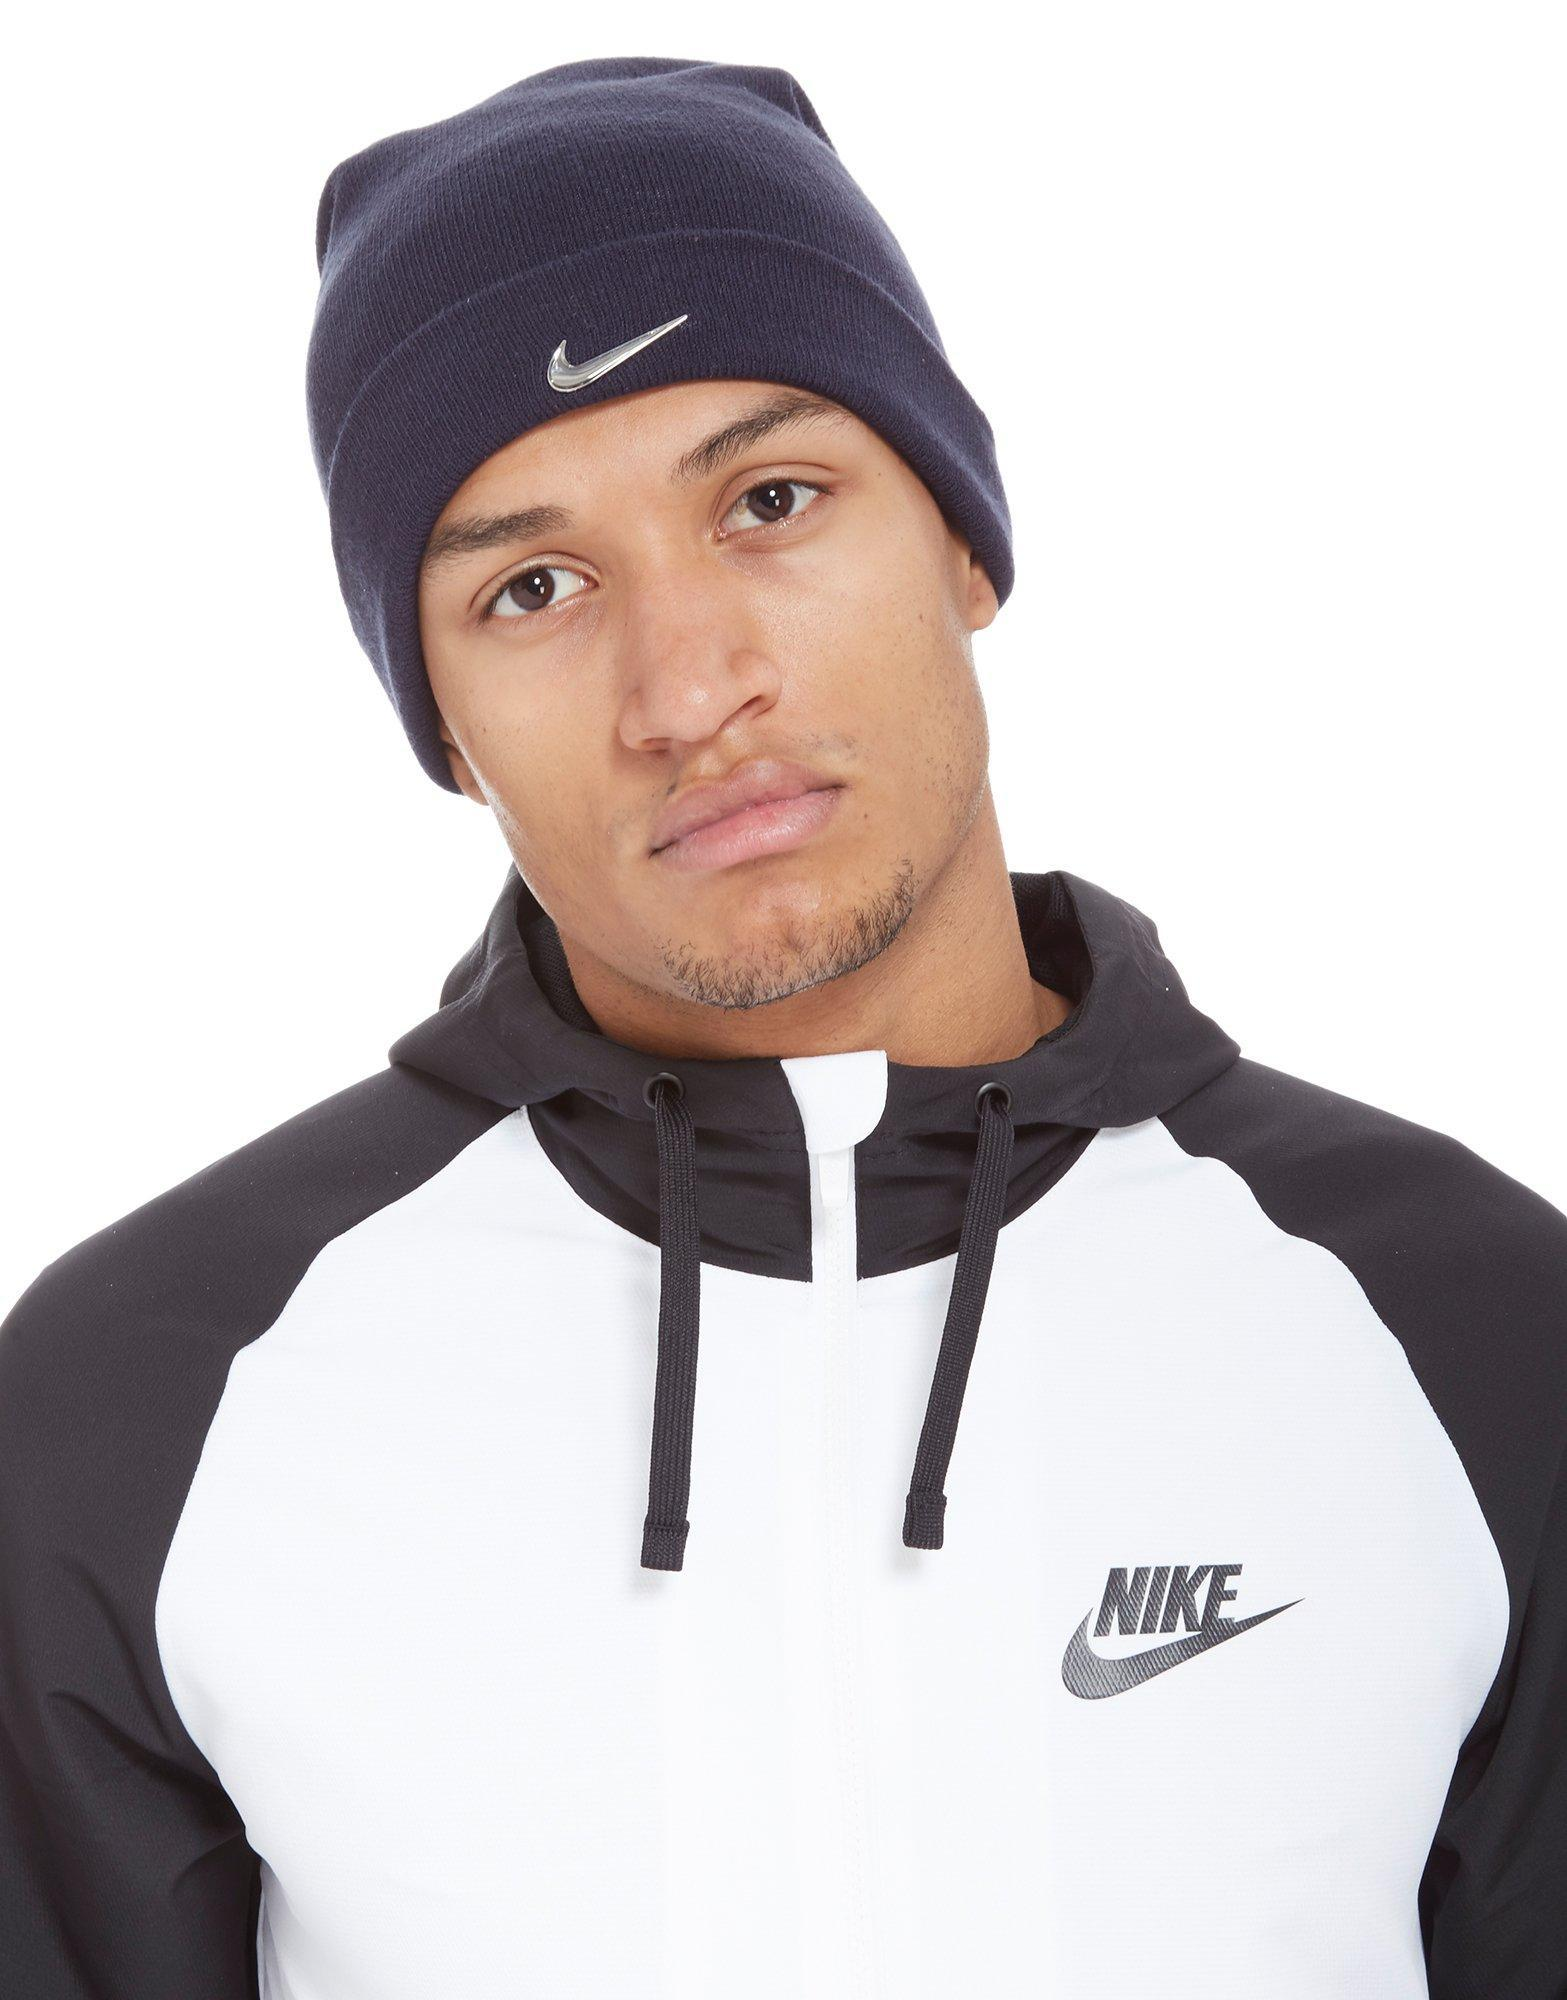 60d9a198bc Lyst - Nike Swoosh Beanie Hat in Blue for Men